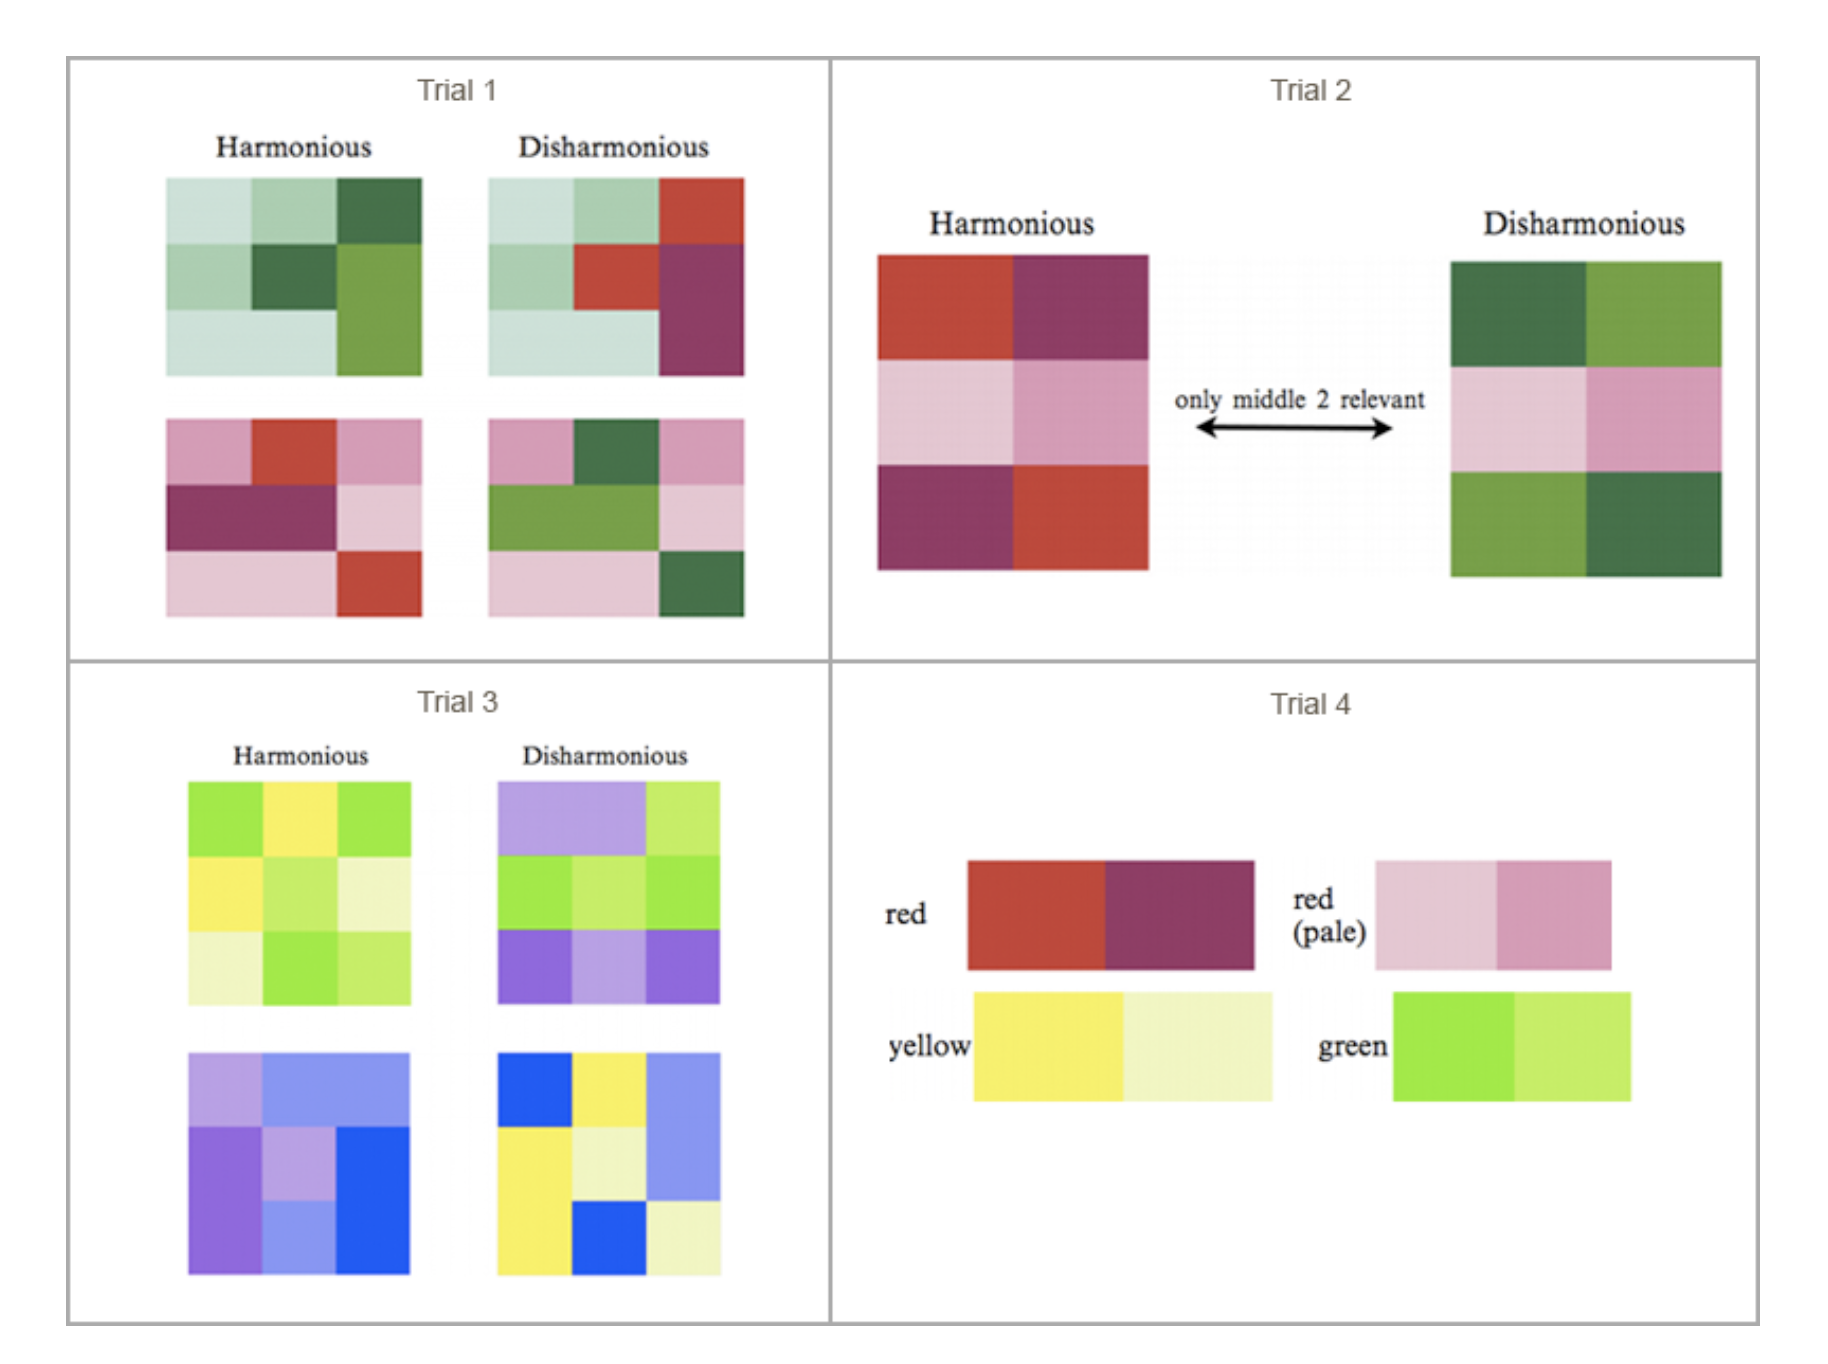 A study about the impact of color patterns on human perception, Sanocki and Sulman